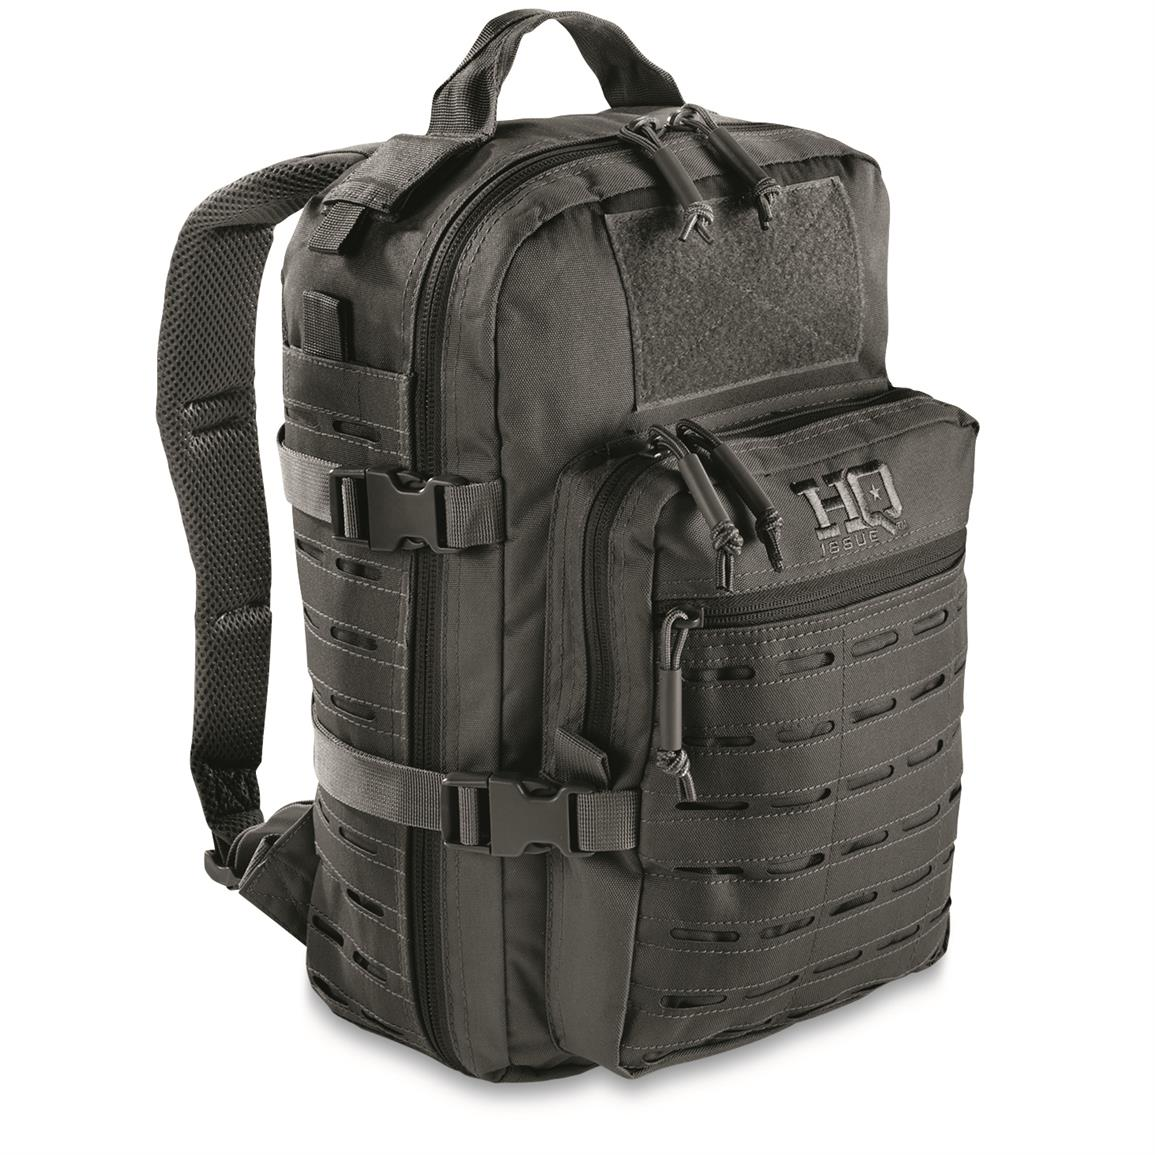 HQ ISSUE Reverse MOLLE Day Pack, Black